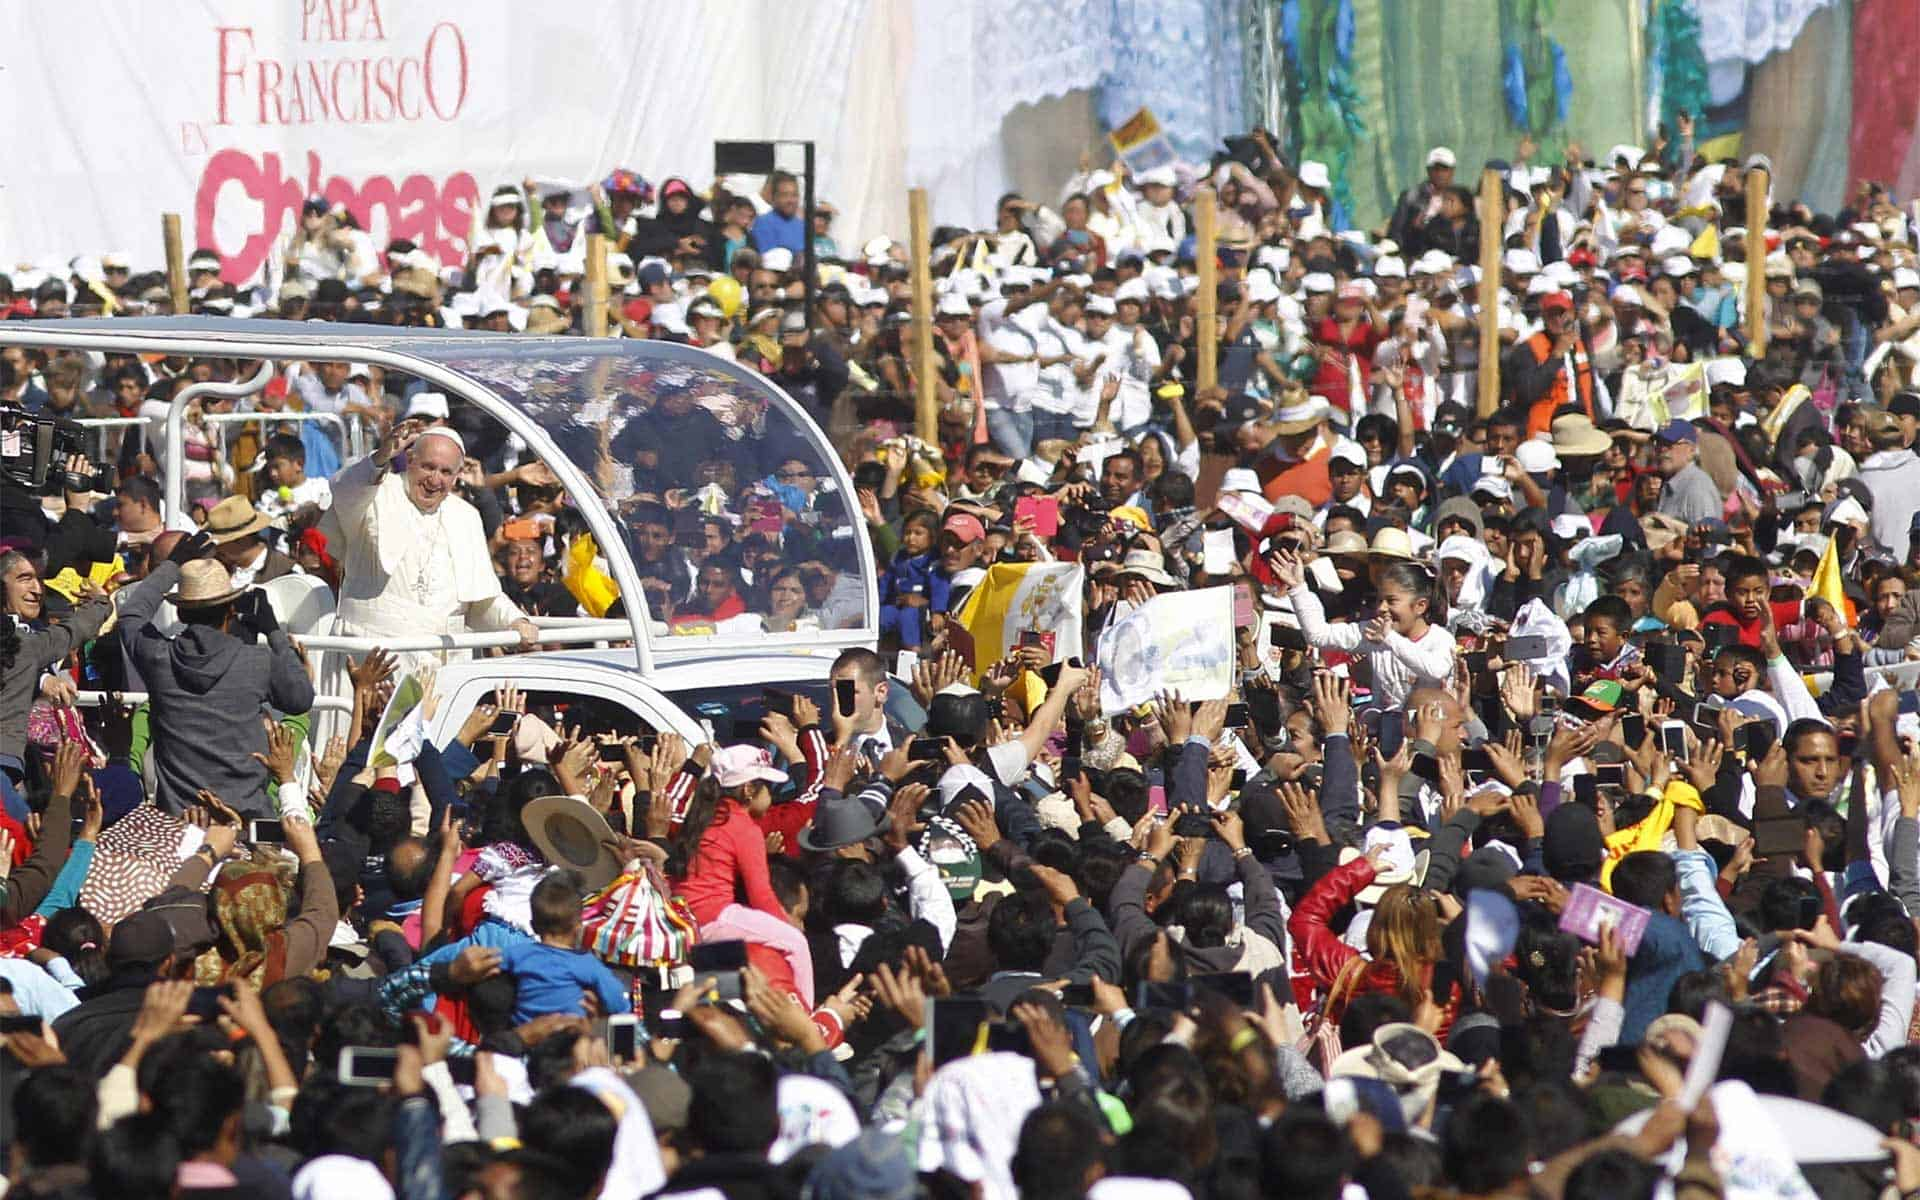 The fifty years of the Neocatechumenal journey in Tor Vergata with Pope Francesco